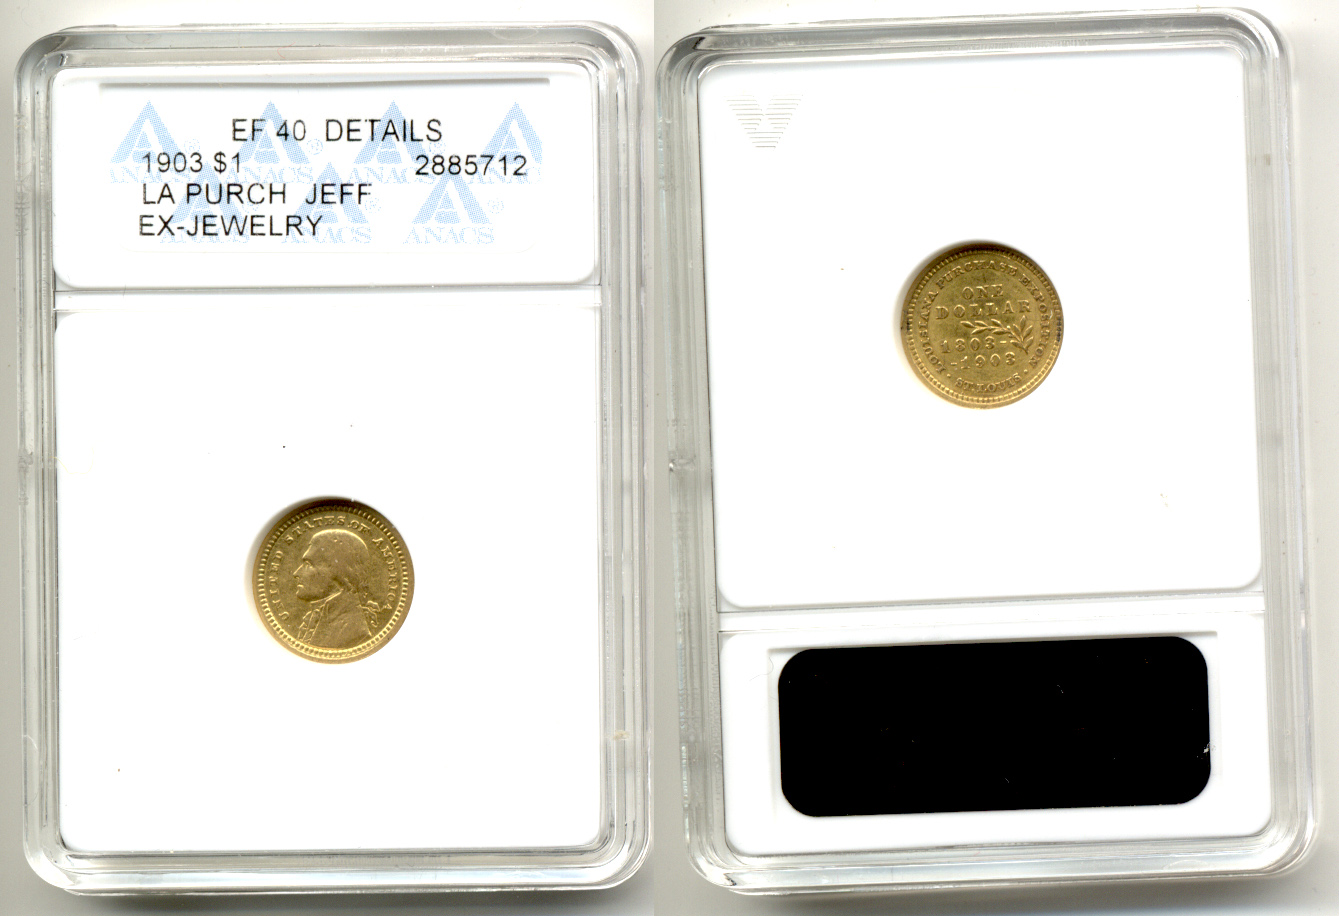 1903 Louisiana Purchase Jefferson Commemorative Gold Dollar ANACS EF-40 Details